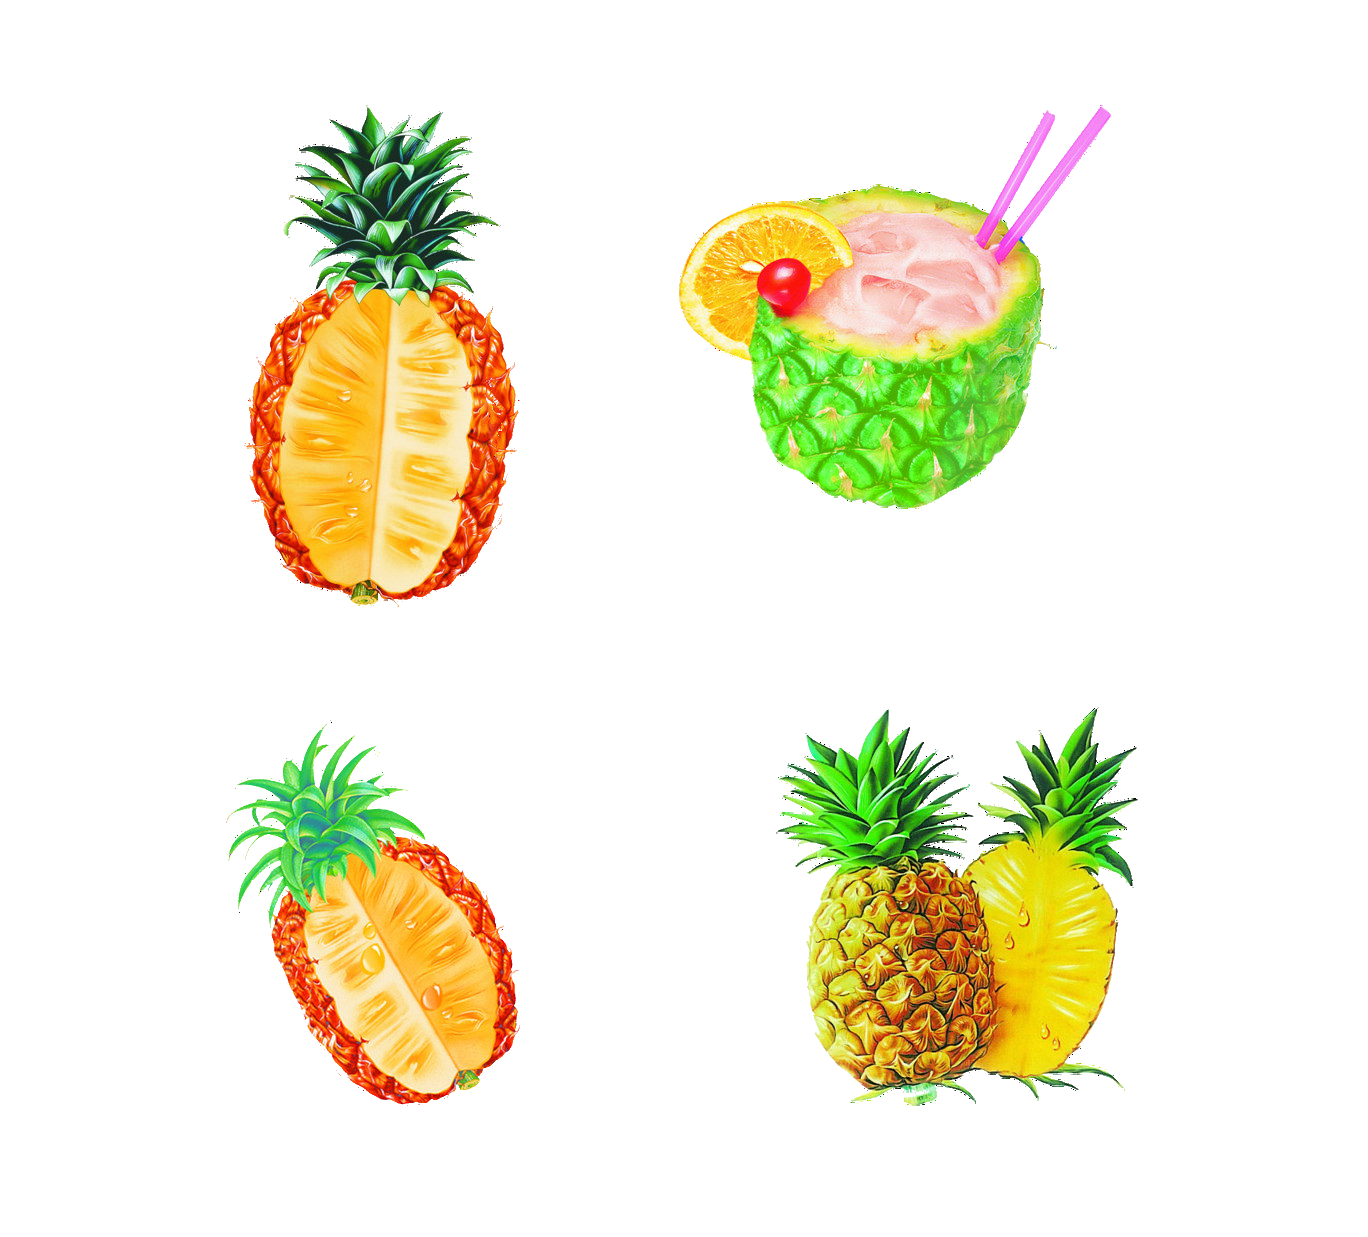 Pineapple clipart tropical. Boluo fan fruit dashu